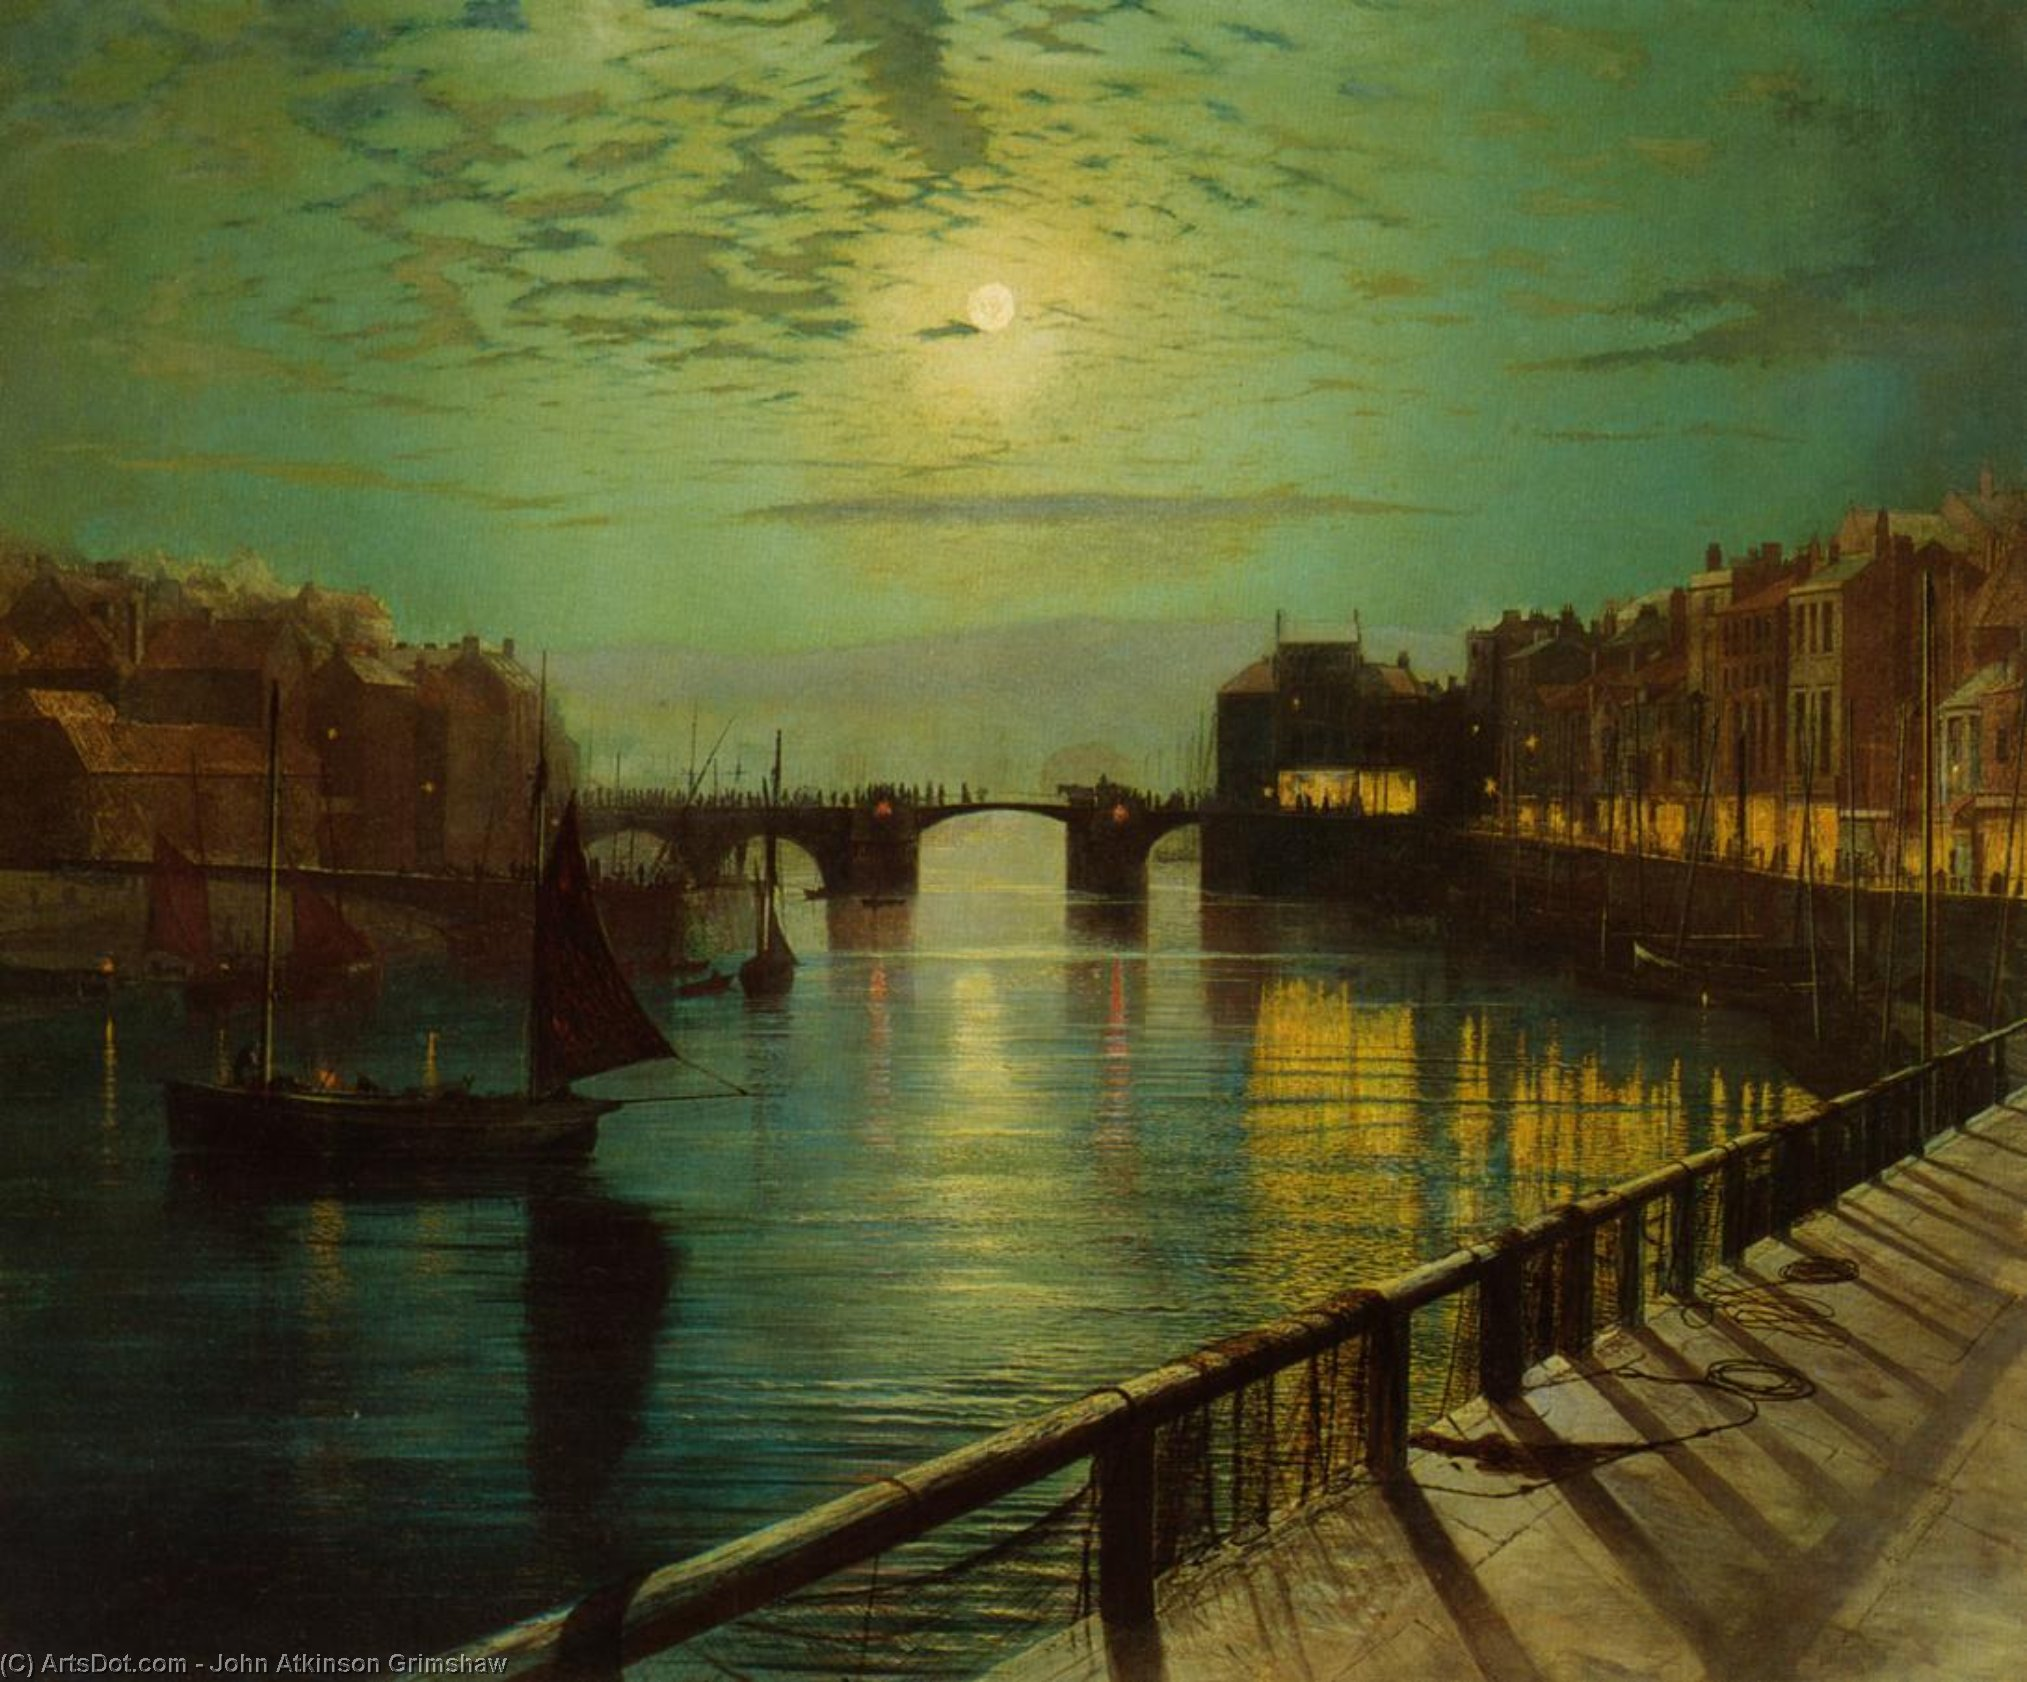 Whitby Harbor by Moonlight by John Atkinson Grimshaw (1836-1893, United Kingdom)